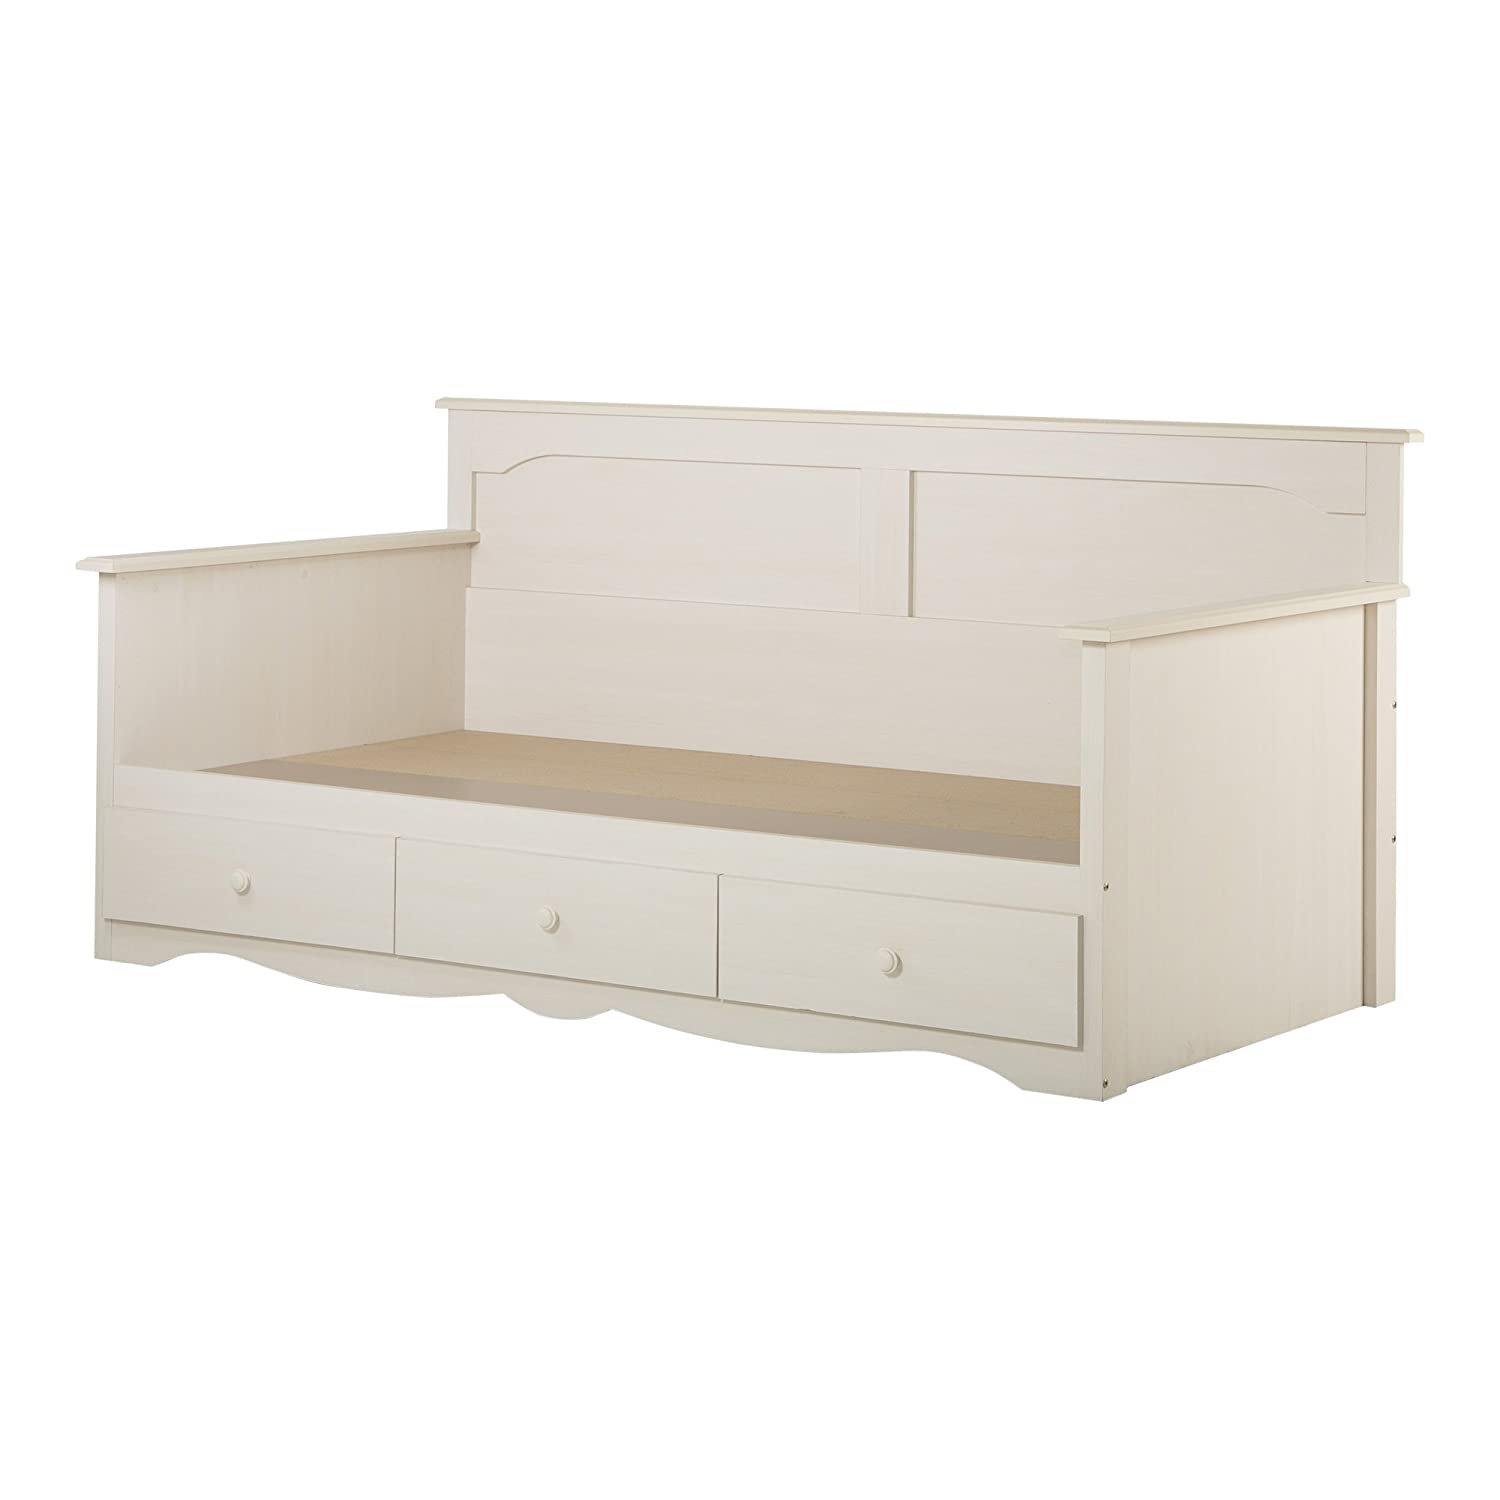 drawer finials pin drawers with trundle roll and finish ii out white casey daybed wood ball